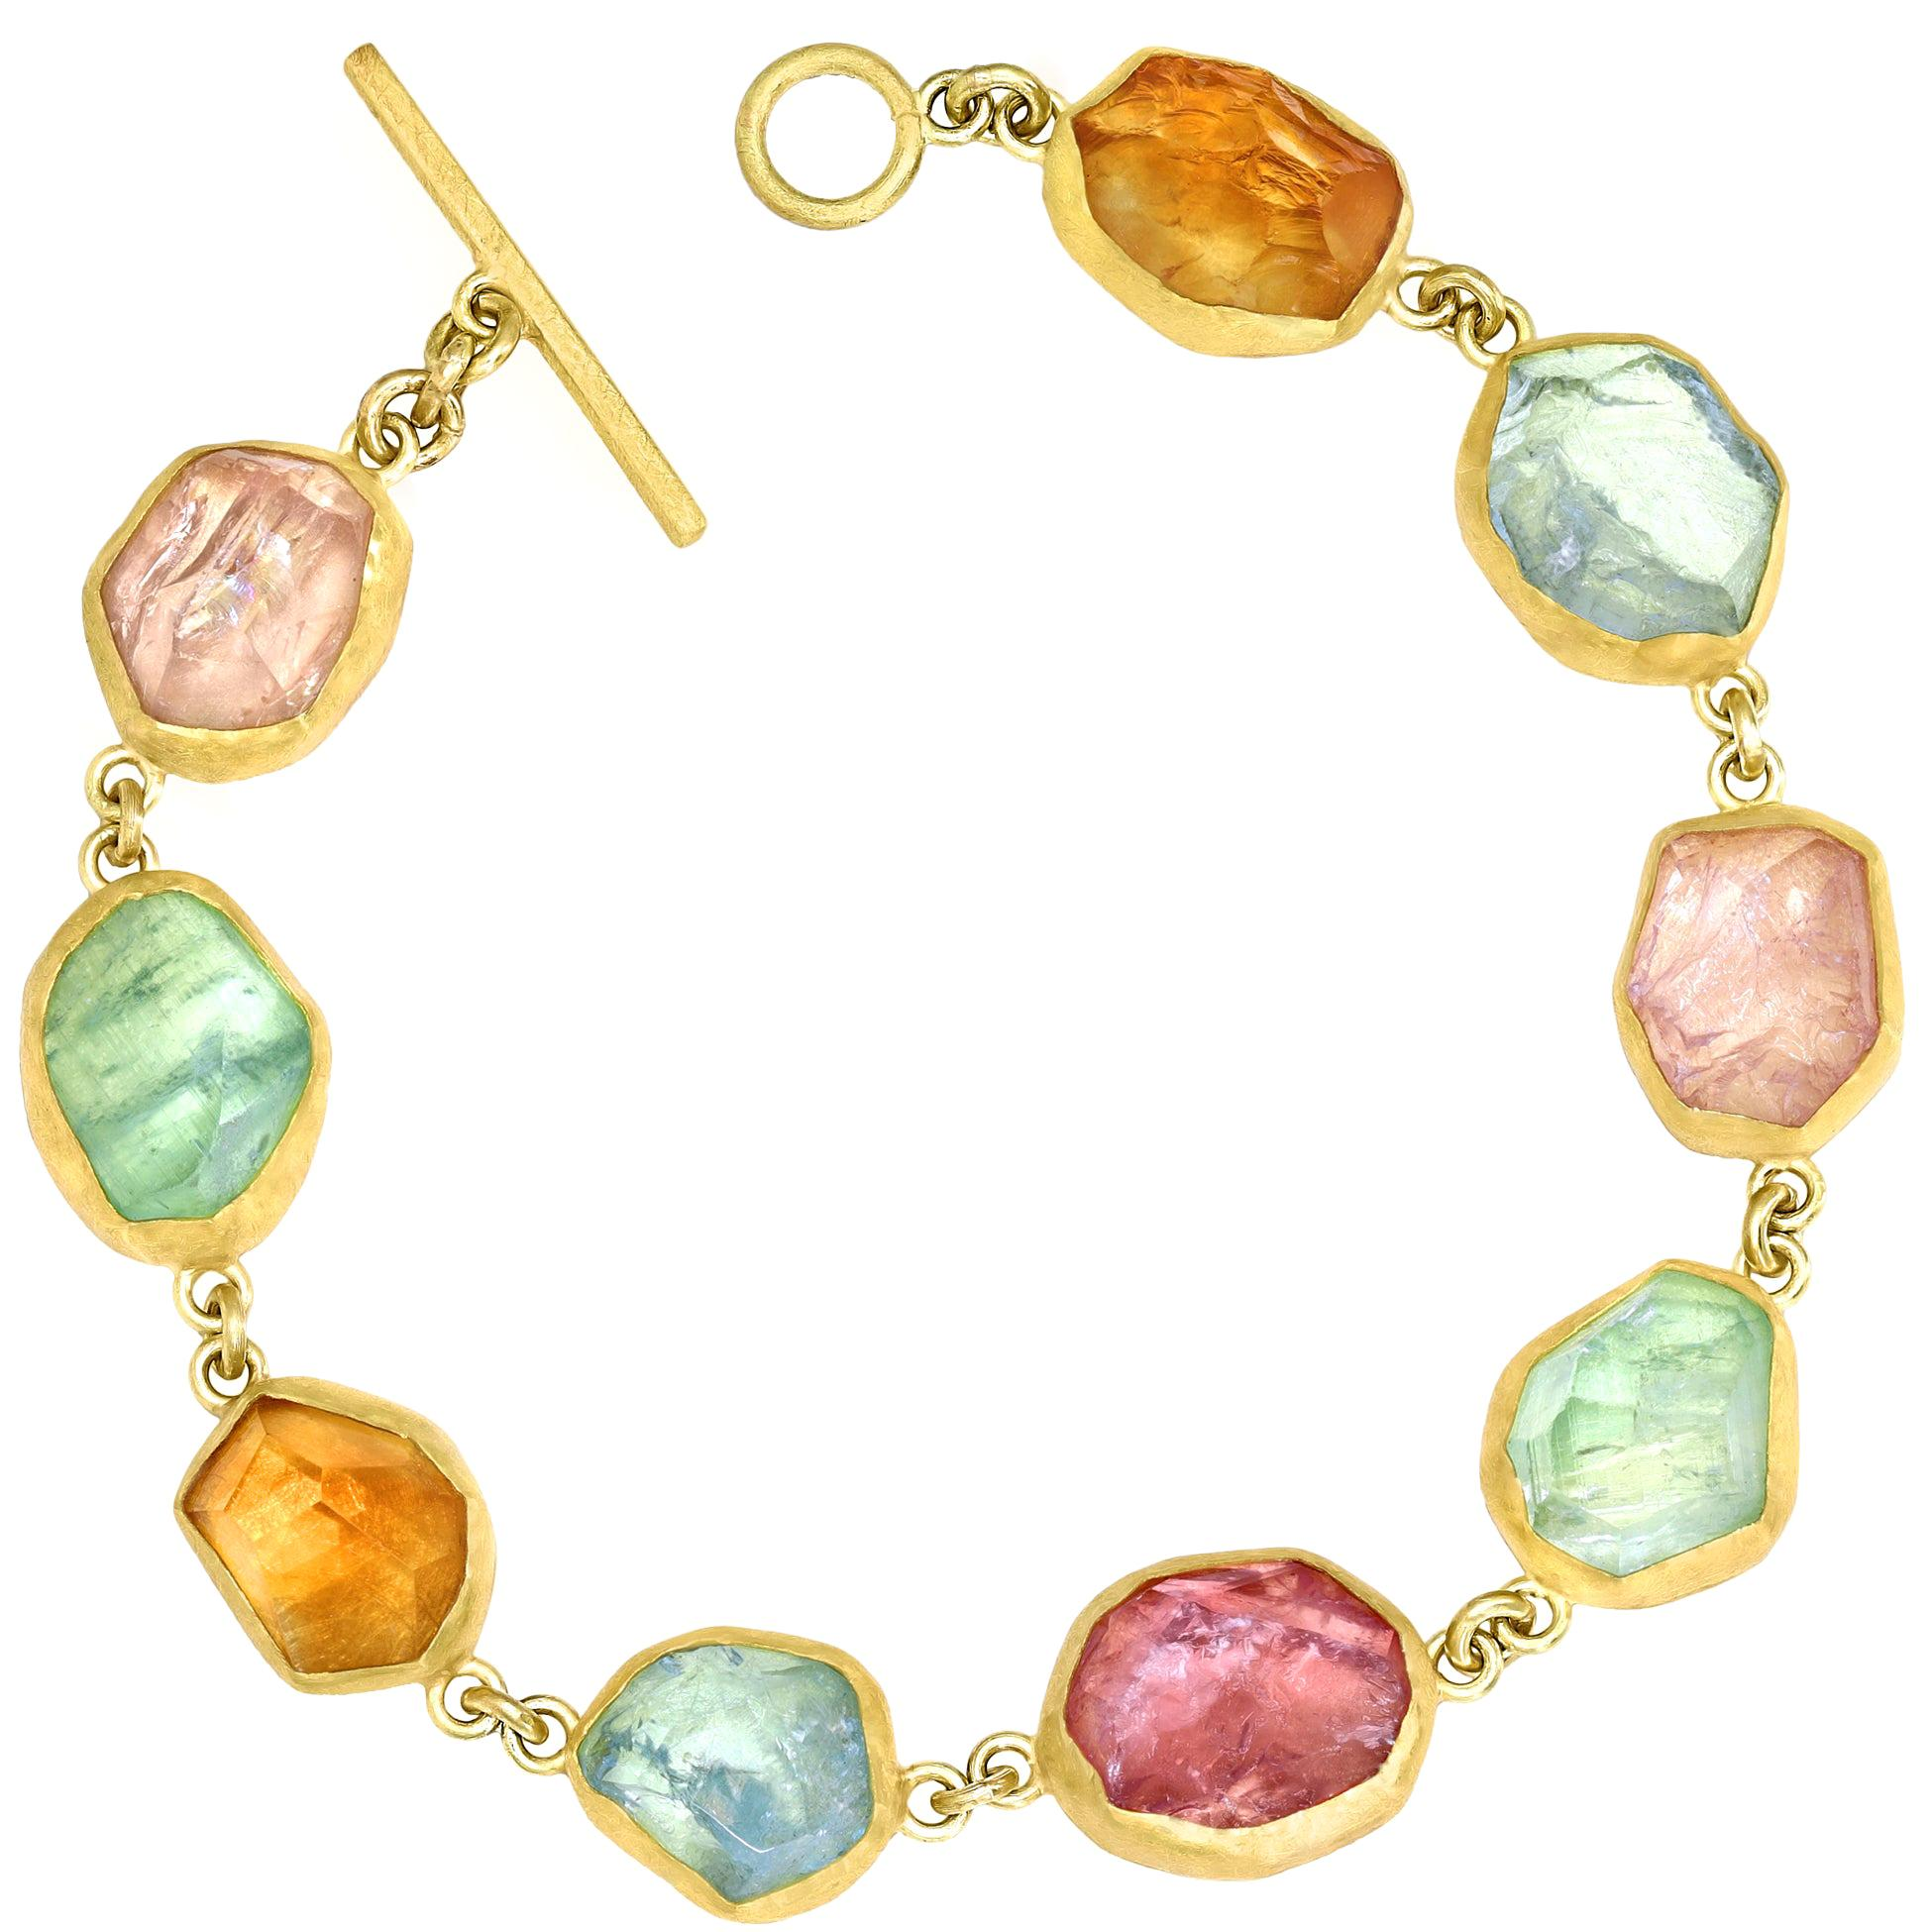 Petra Class Aquamarine Citrine Imperial Topaz Green and Pink Tourmaline Bracelet